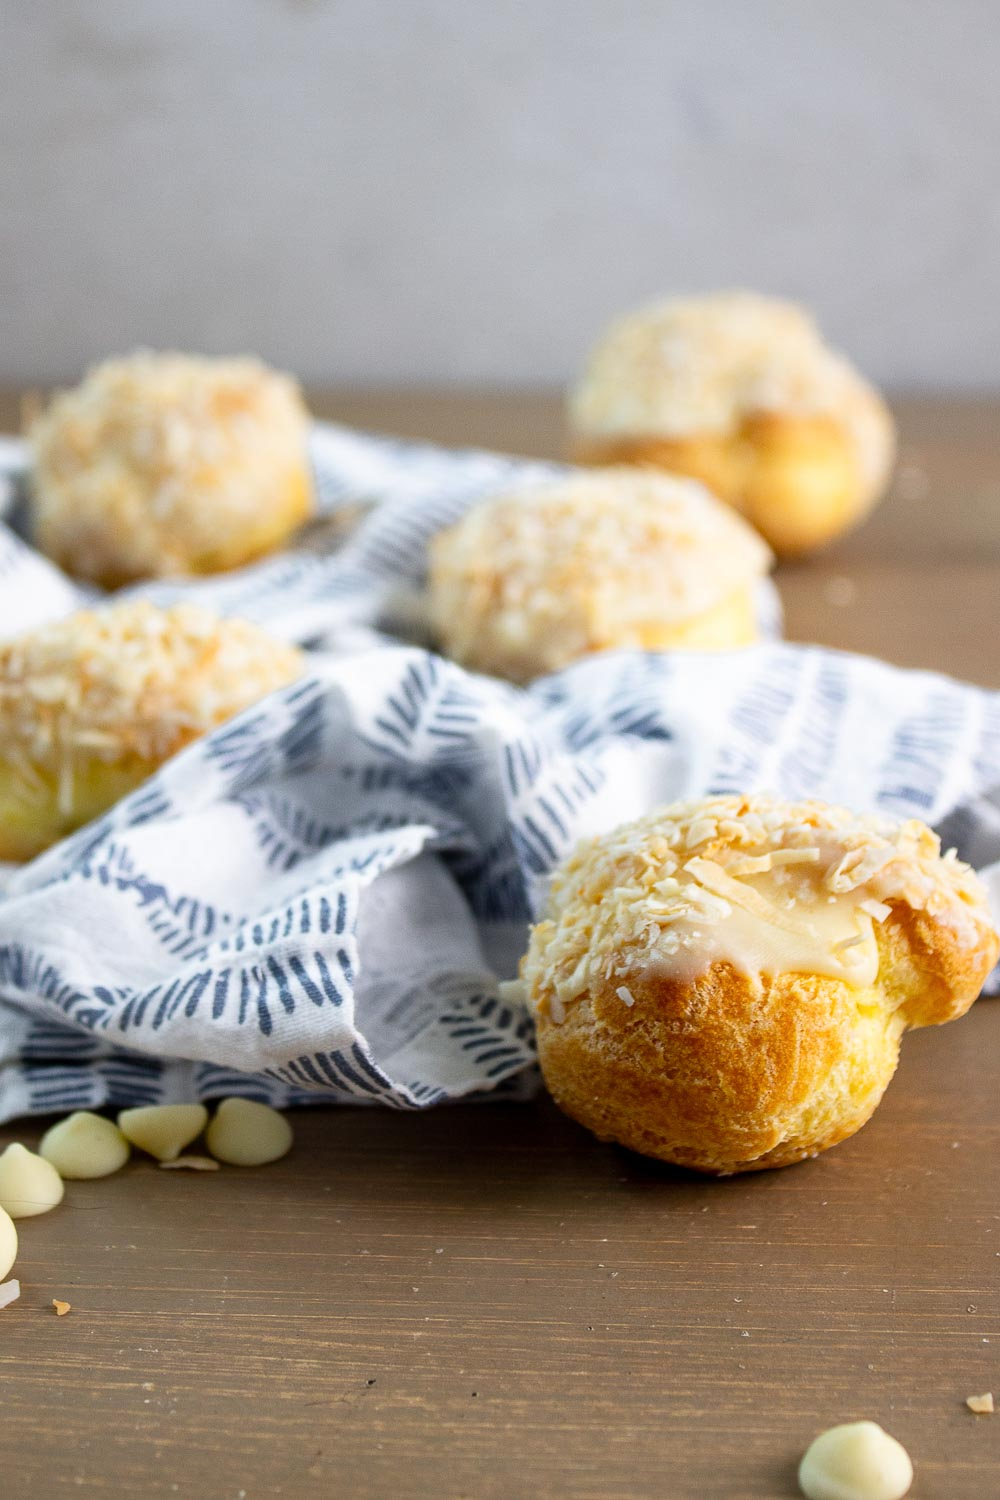 If you love cream puffs, put these orange coconut cream puffs on your to-do list. This homemade cream puffs recipe is made with a classic French choux pastry dough and filled with orange coconut cream and drizzled with white chocolate ganache. Perfect for your sweet tooth cravings.